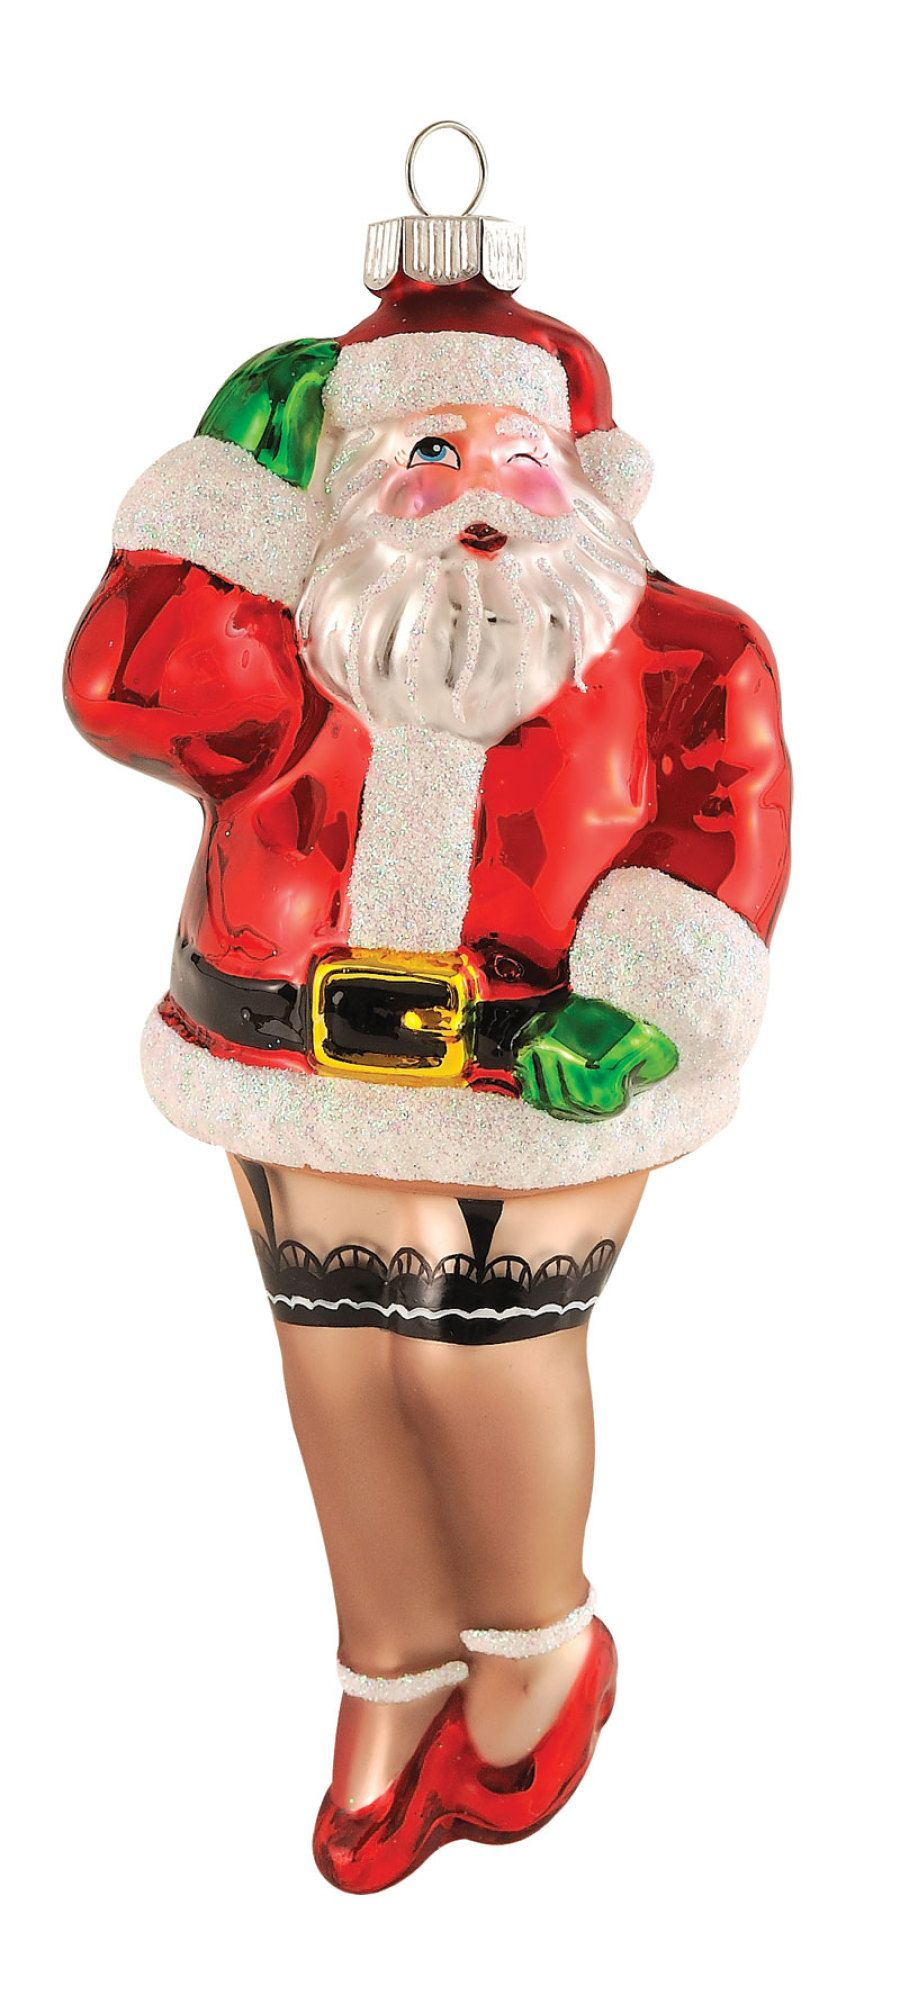 Novelty ornaments - 10 Unbelievably Naughty Ornaments For An X Rated Christmas Tree Nsfw